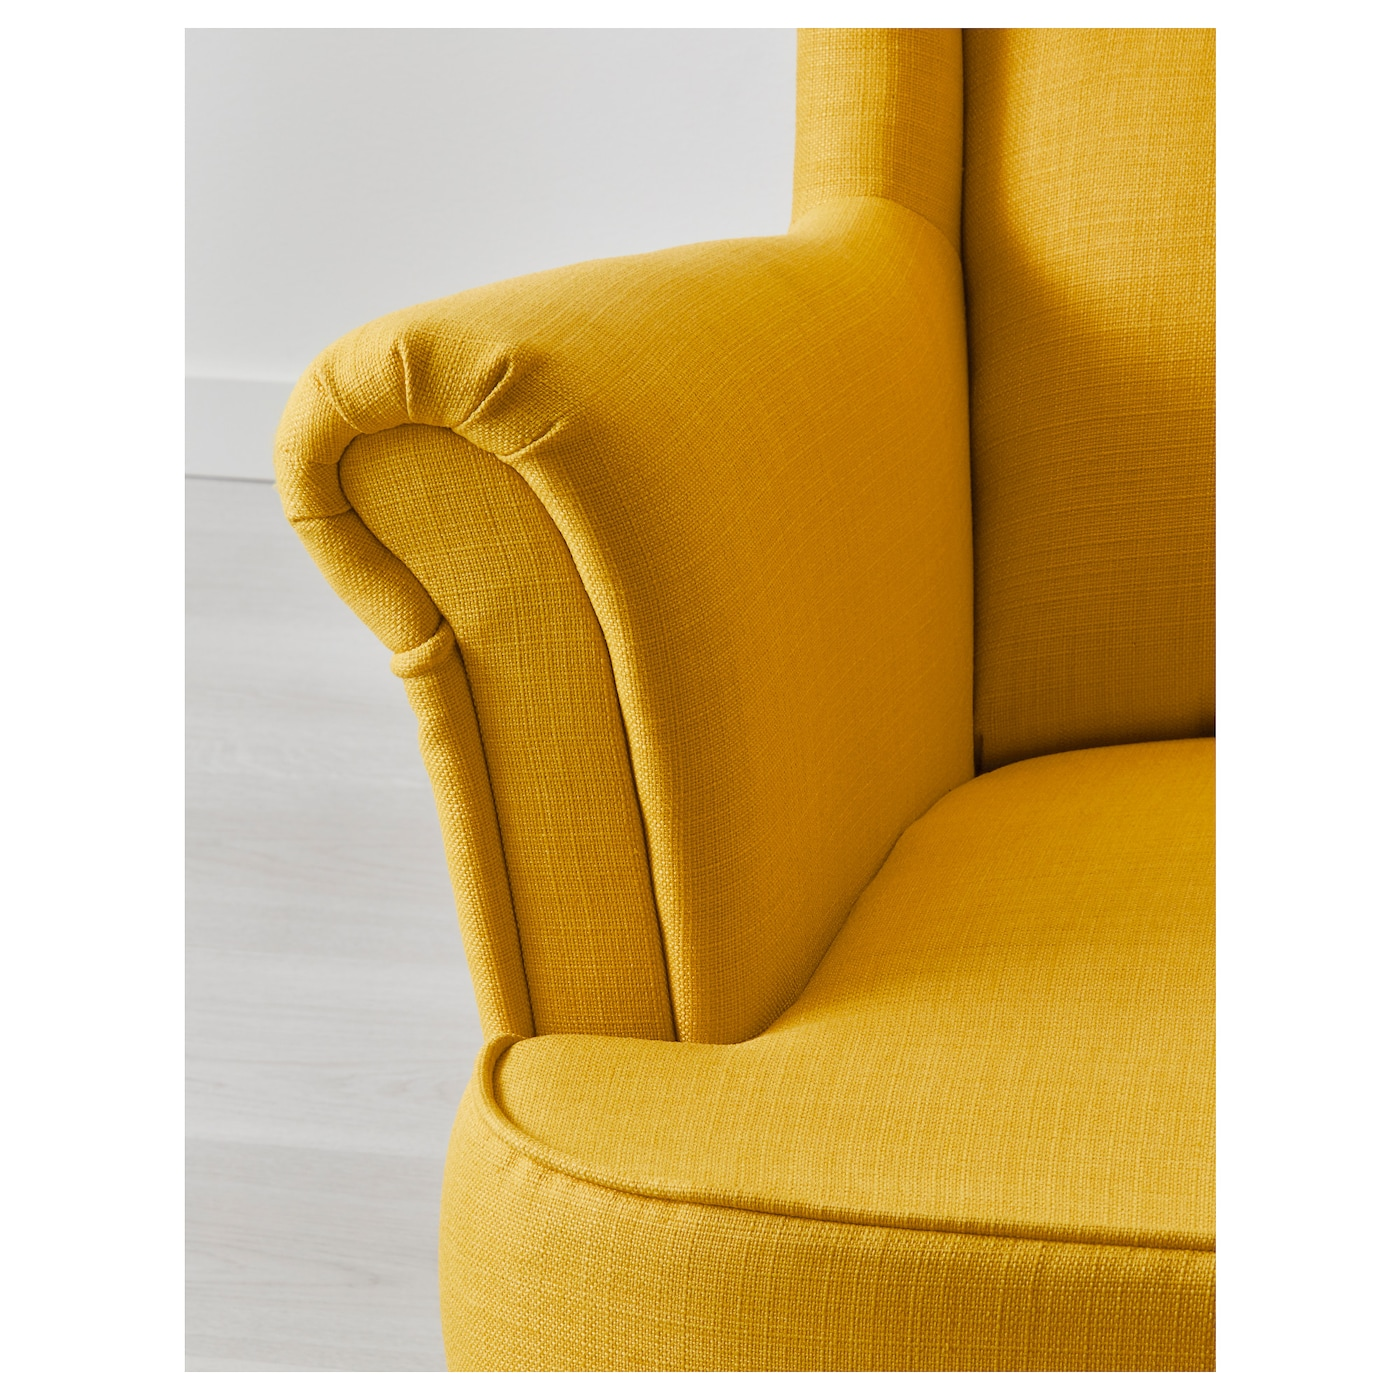 IKEA STRANDMON wing chair 10 year guarantee. Read about the terms in the guarantee brochure.